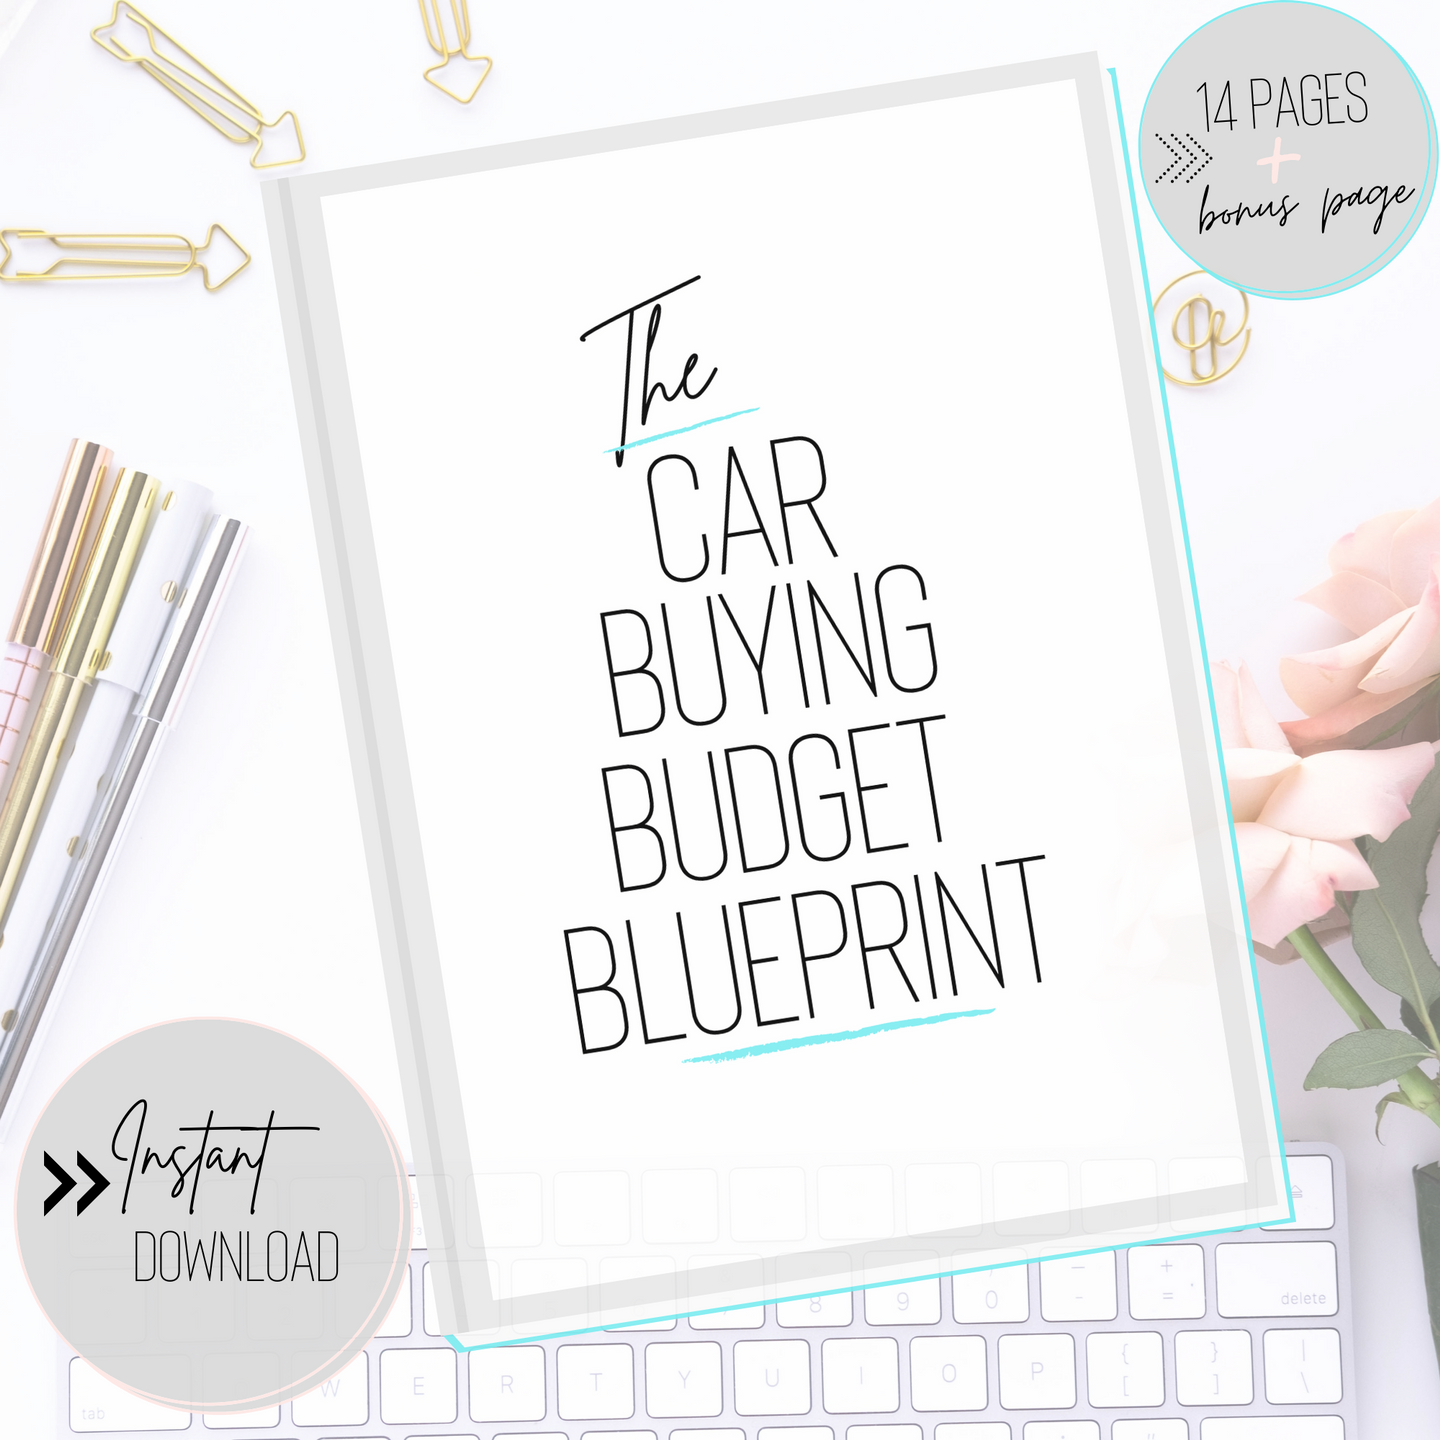 Car buying budget